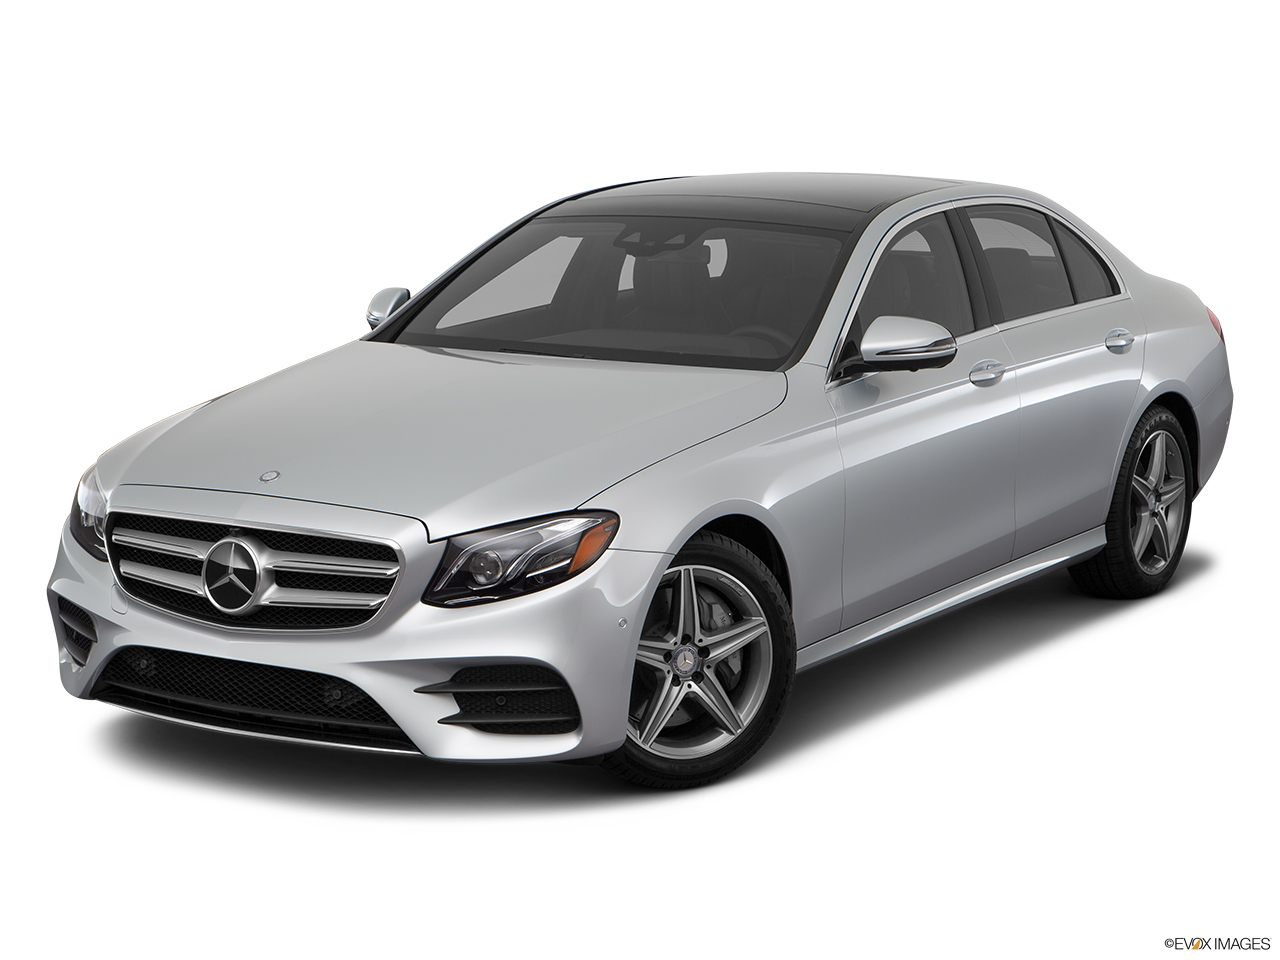 Mercedes benz e class saloon price in egypt new mercedes for Mercedes benz new car prices